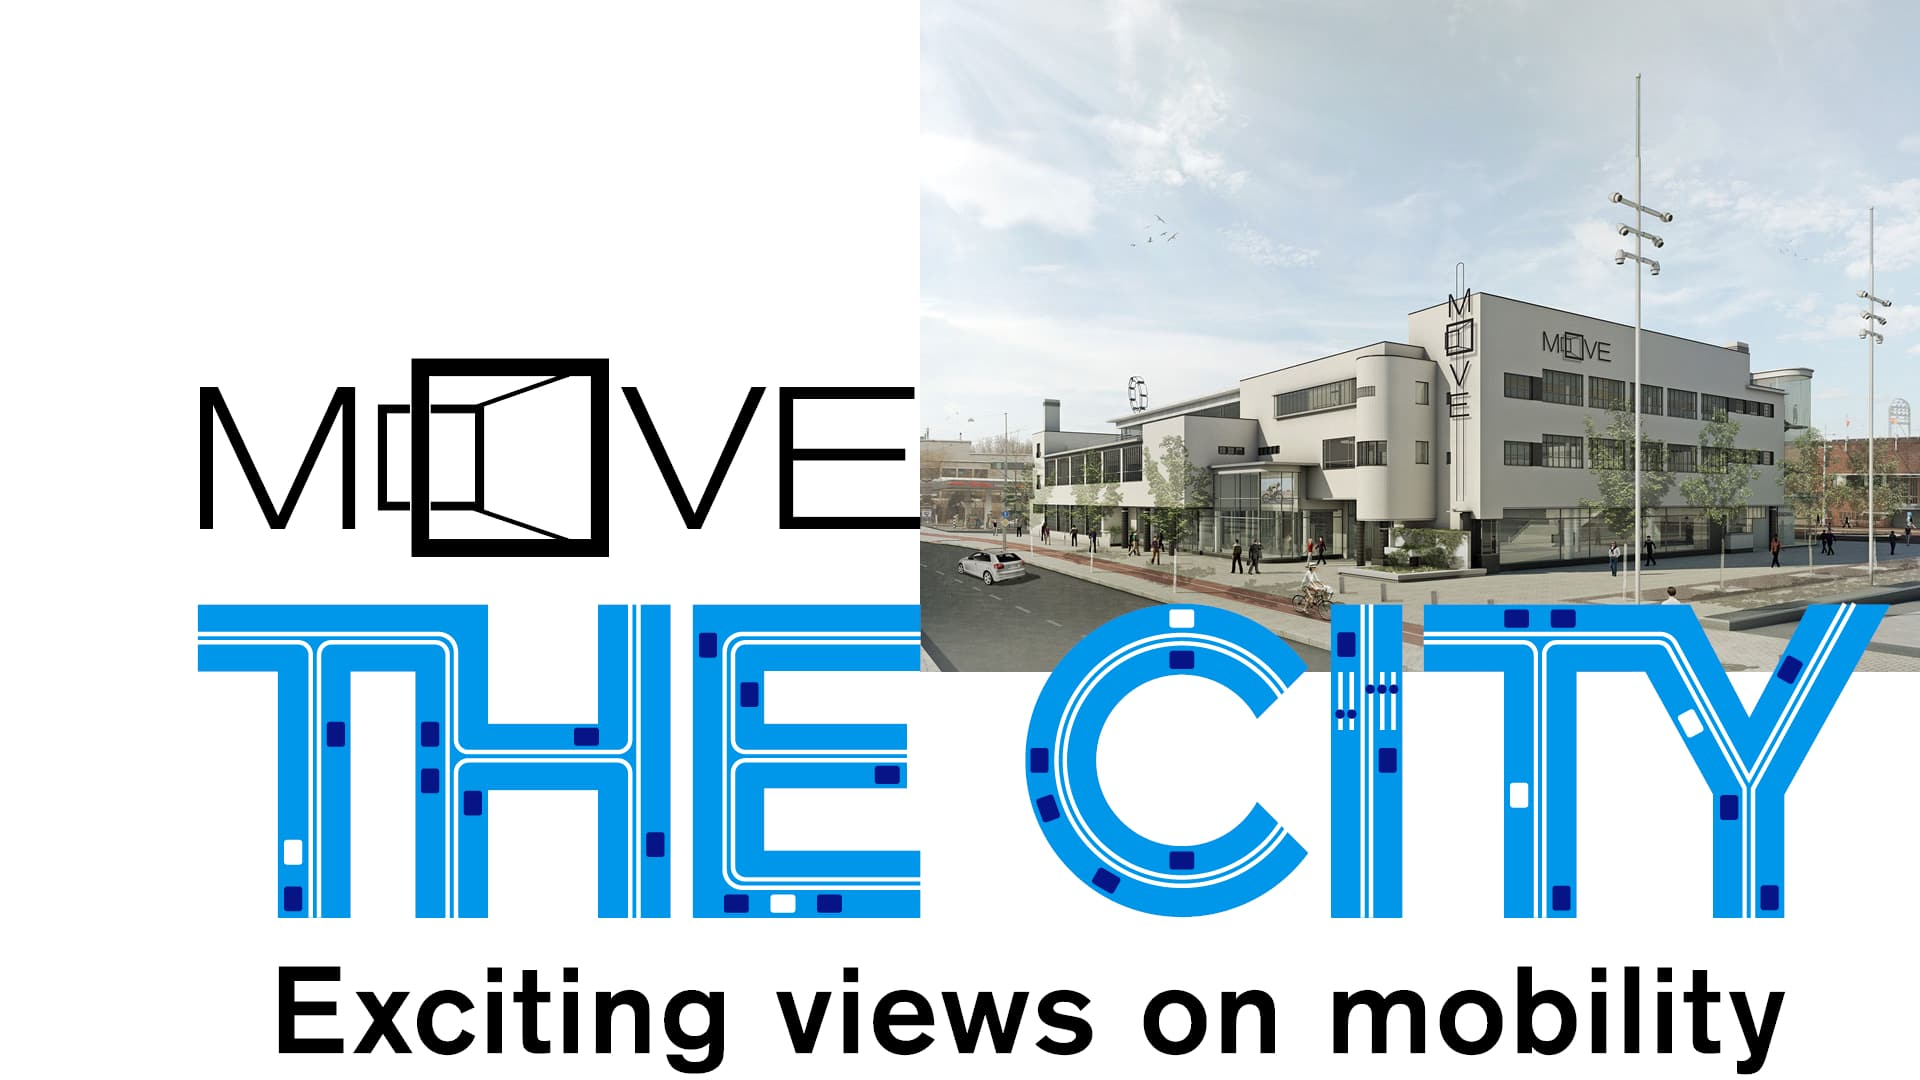 MOVE the city